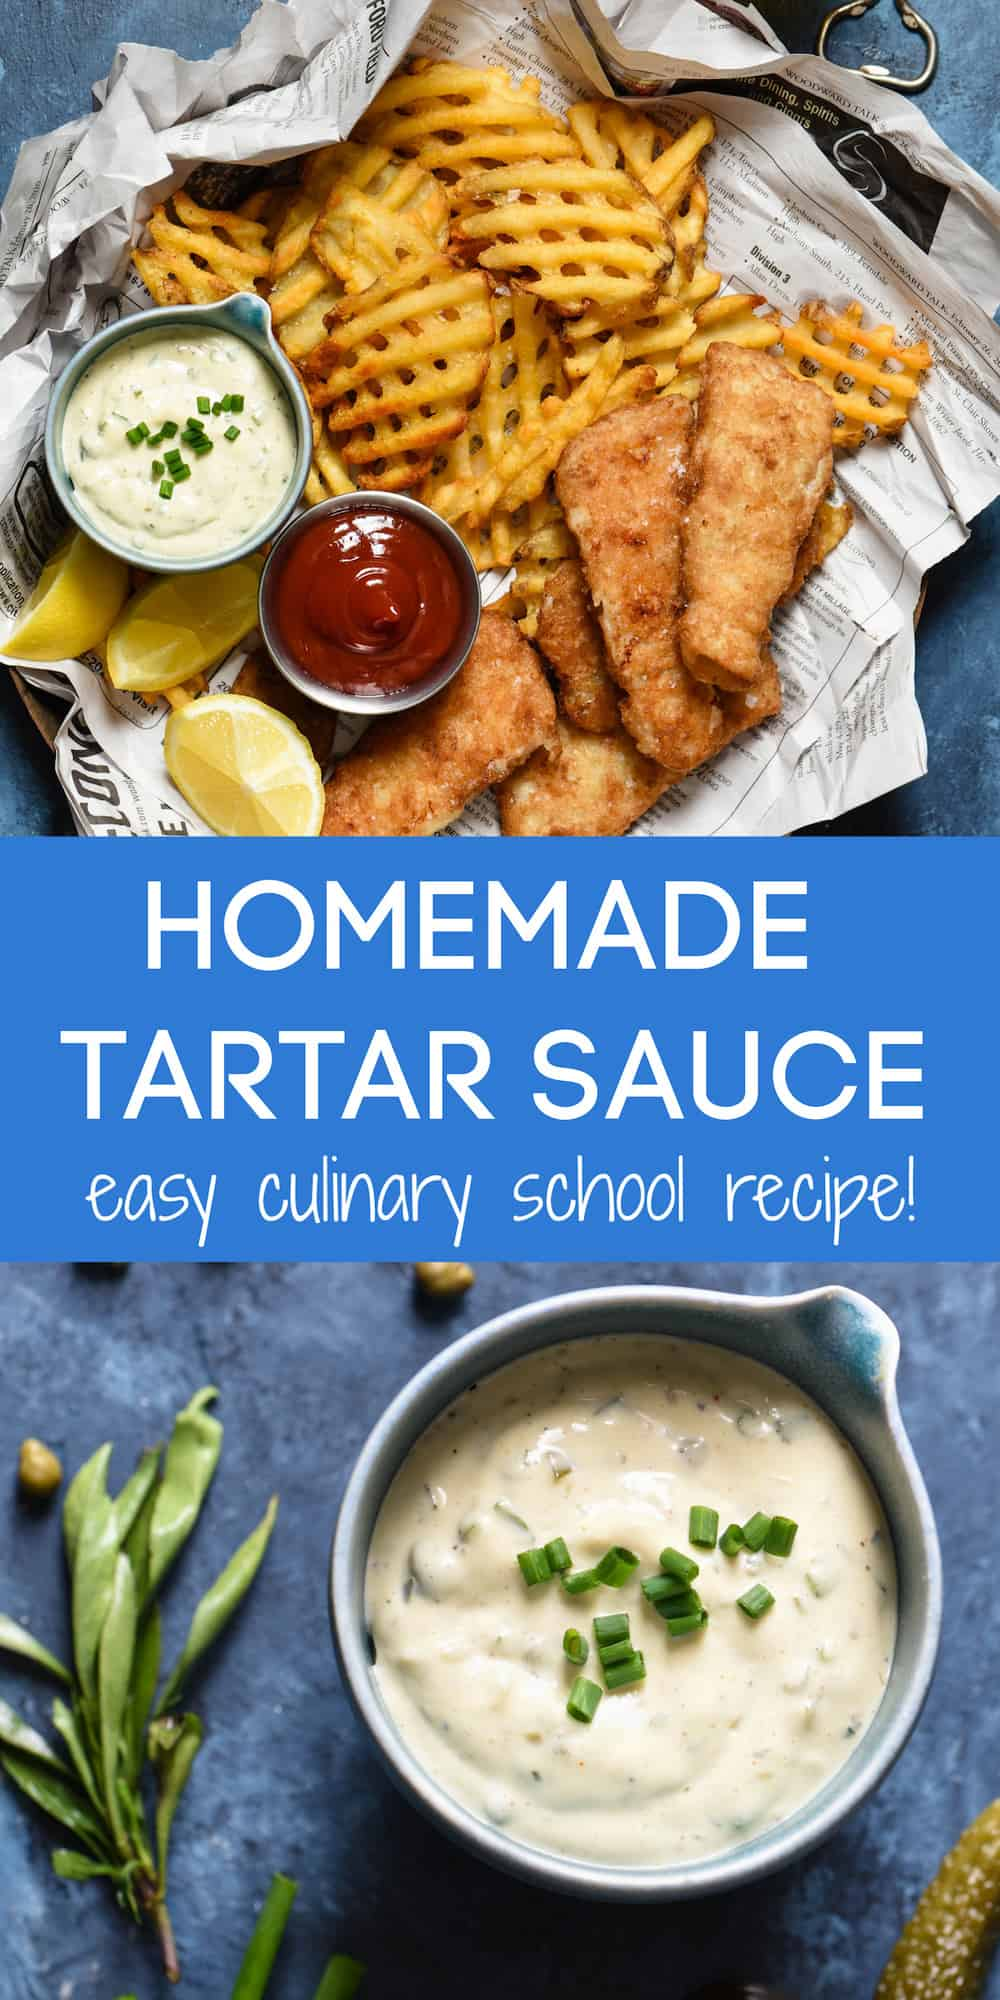 Looking for a tried and true homemade tartar sauce recipe? This one is adapted from a culinary school recipe, but is simple enough for anybody to make at home! | foxeslovelemons.com